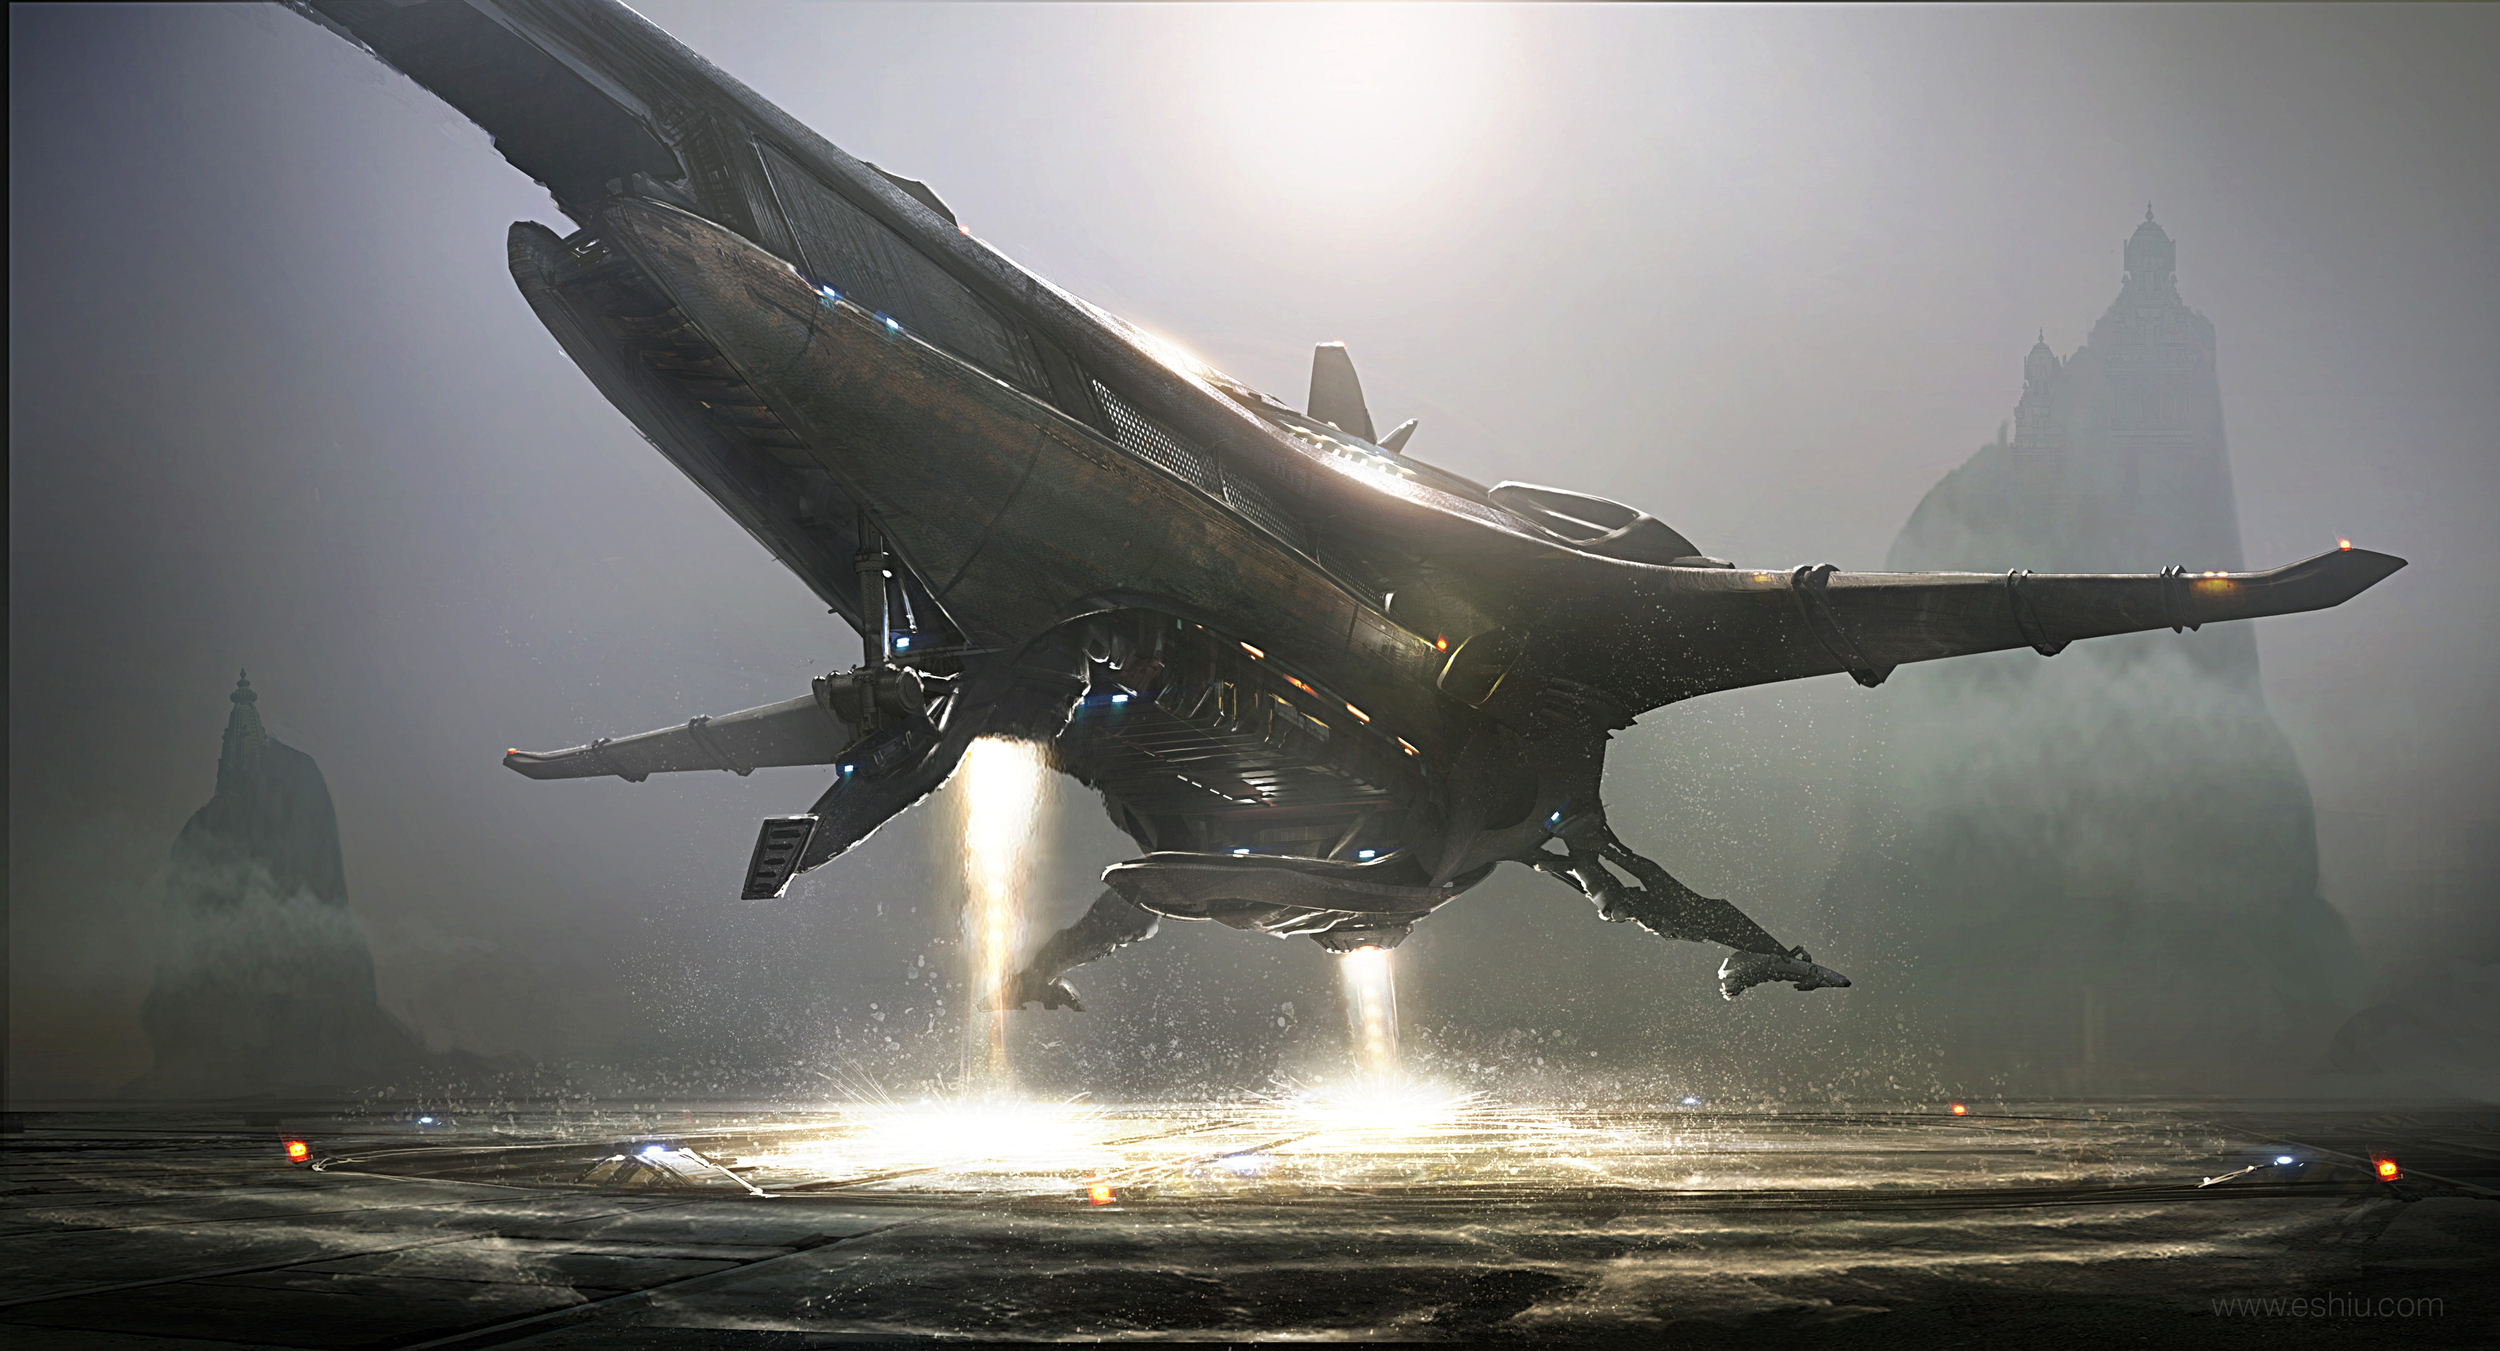 The Sci-Fi Concept Art of Emmanuel Shiu